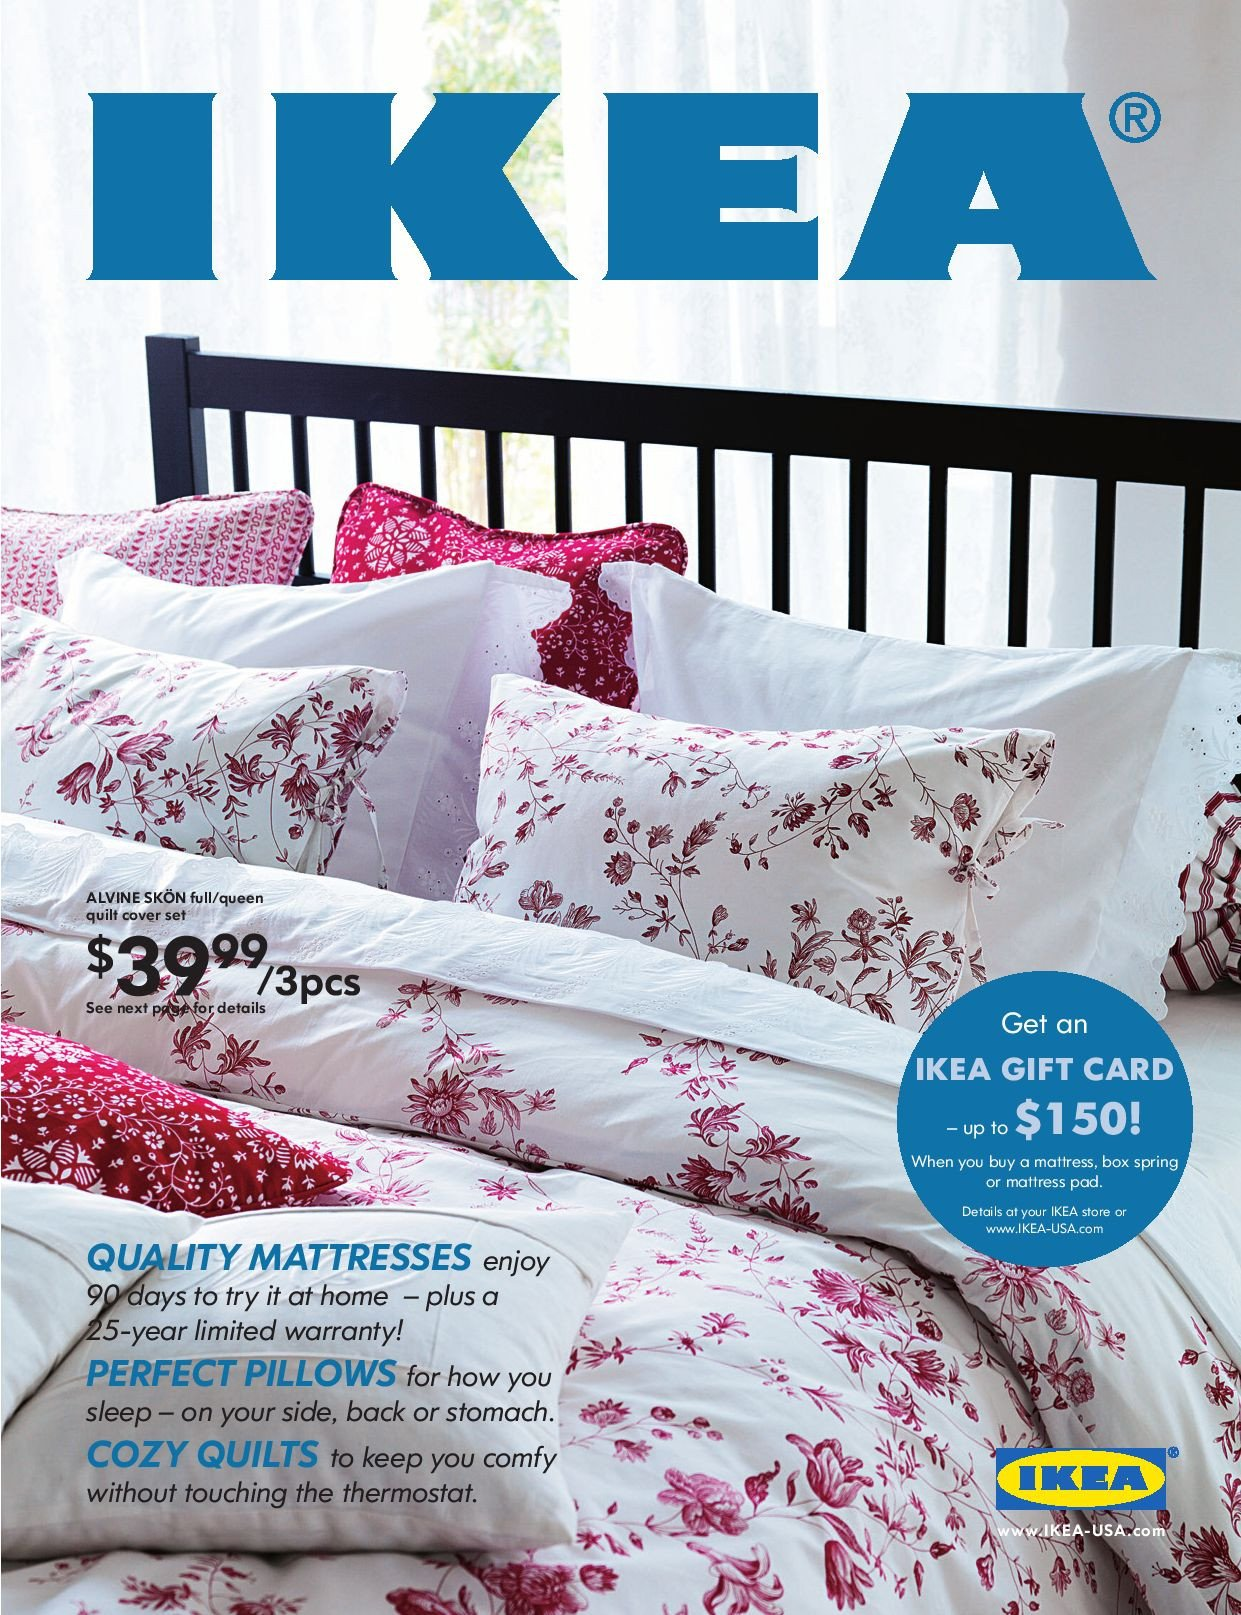 Queen Bedroom Set Ikea New Ikea Ikea Ikea by Lajesslefreak issuu